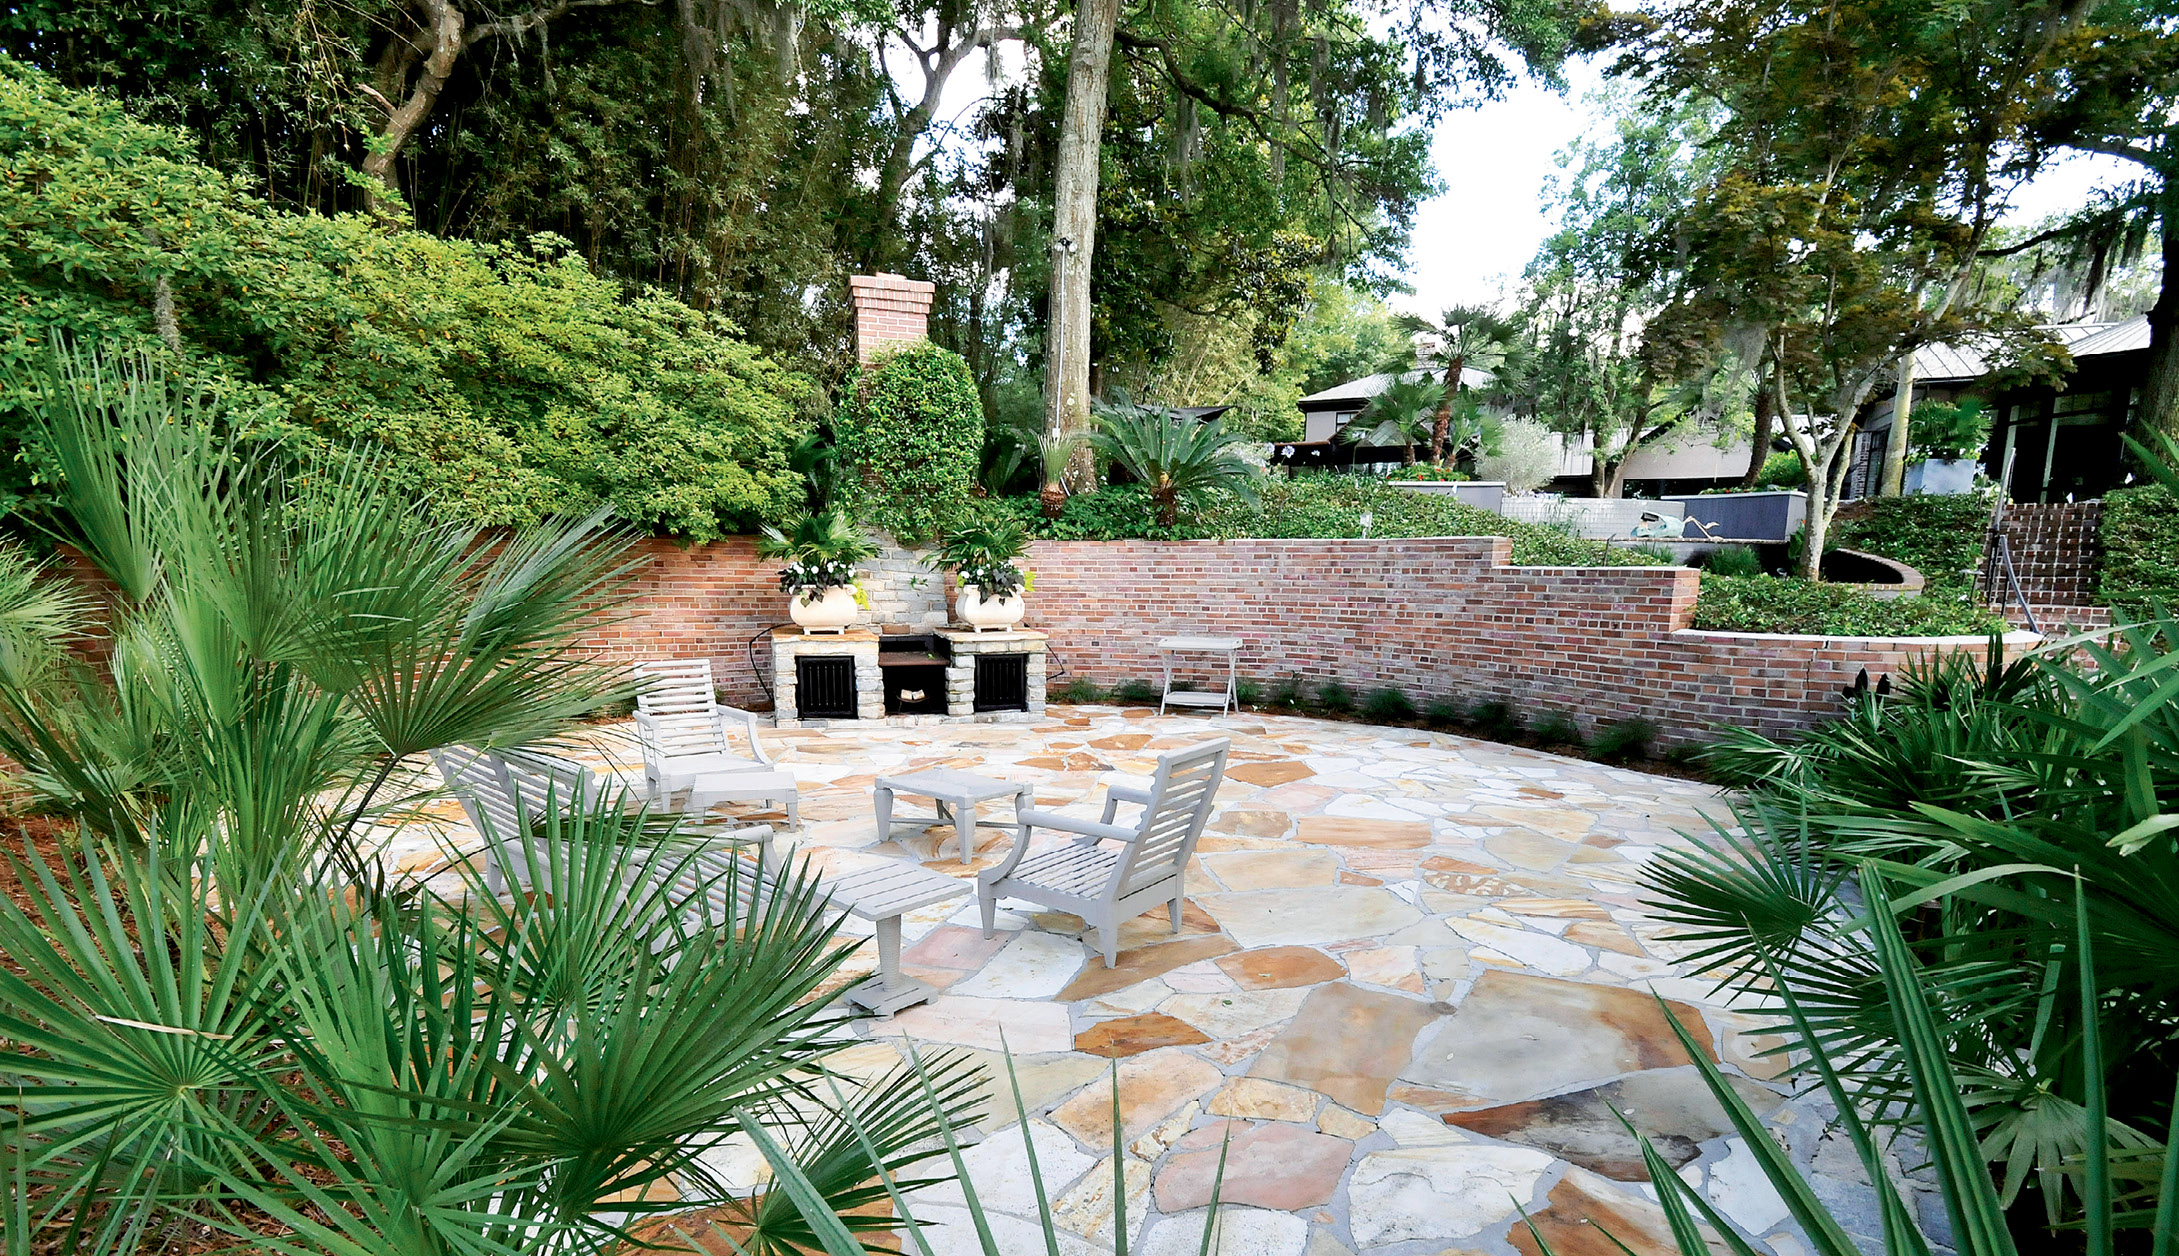 Iron grates were added to the existing brick fireplace to dress it up a bit. The outdoor room is a popular spot for oyster roasts and entertaining.